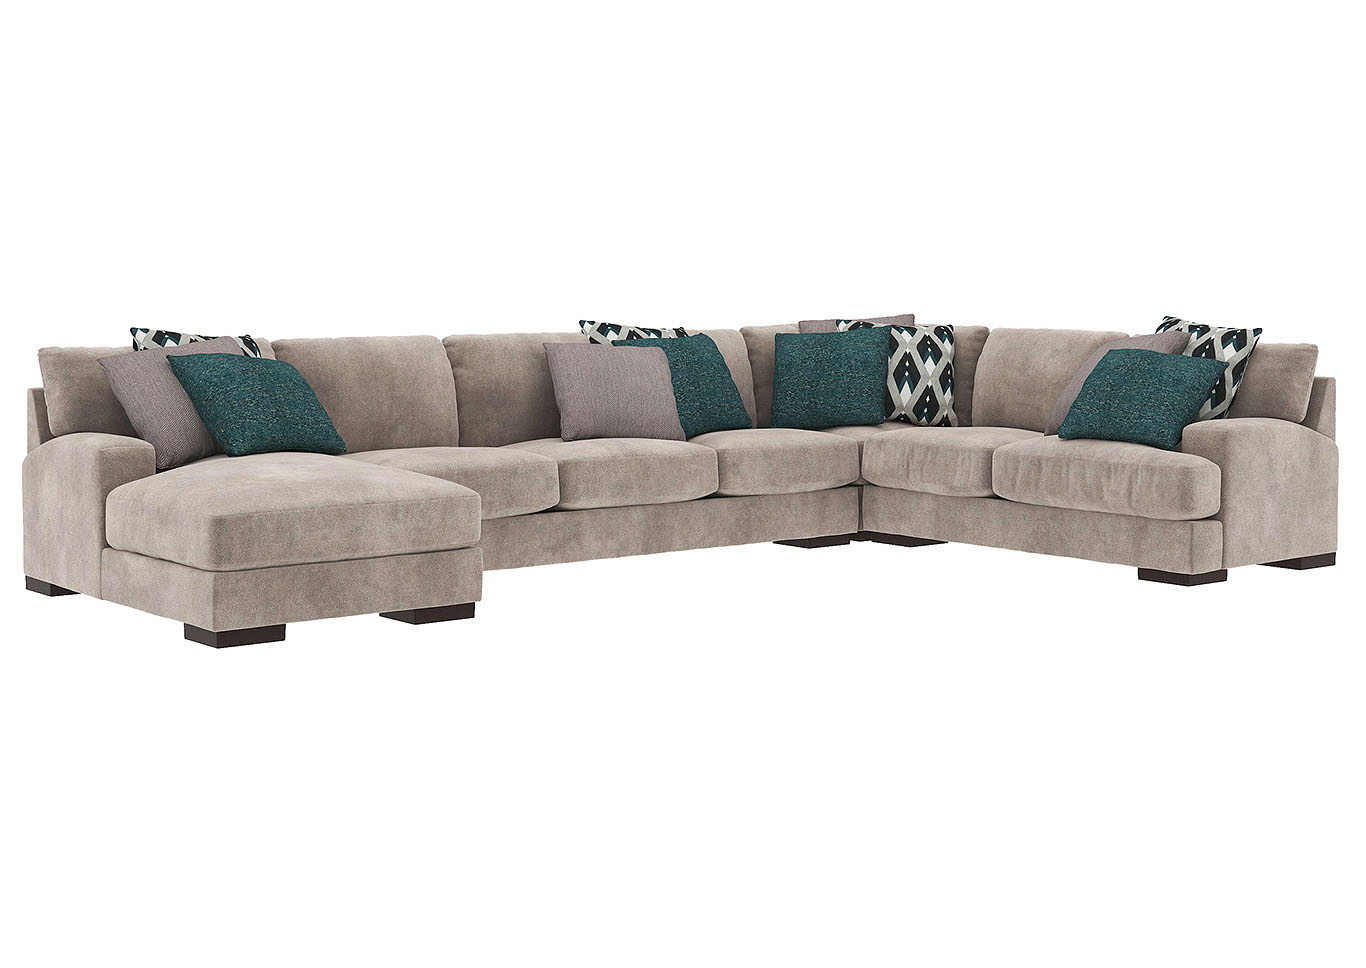 Bardarson 4 Piece Sectional Ashley Furniture Homestore Throughout Benton 4 Piece Sectionals (View 9 of 15)